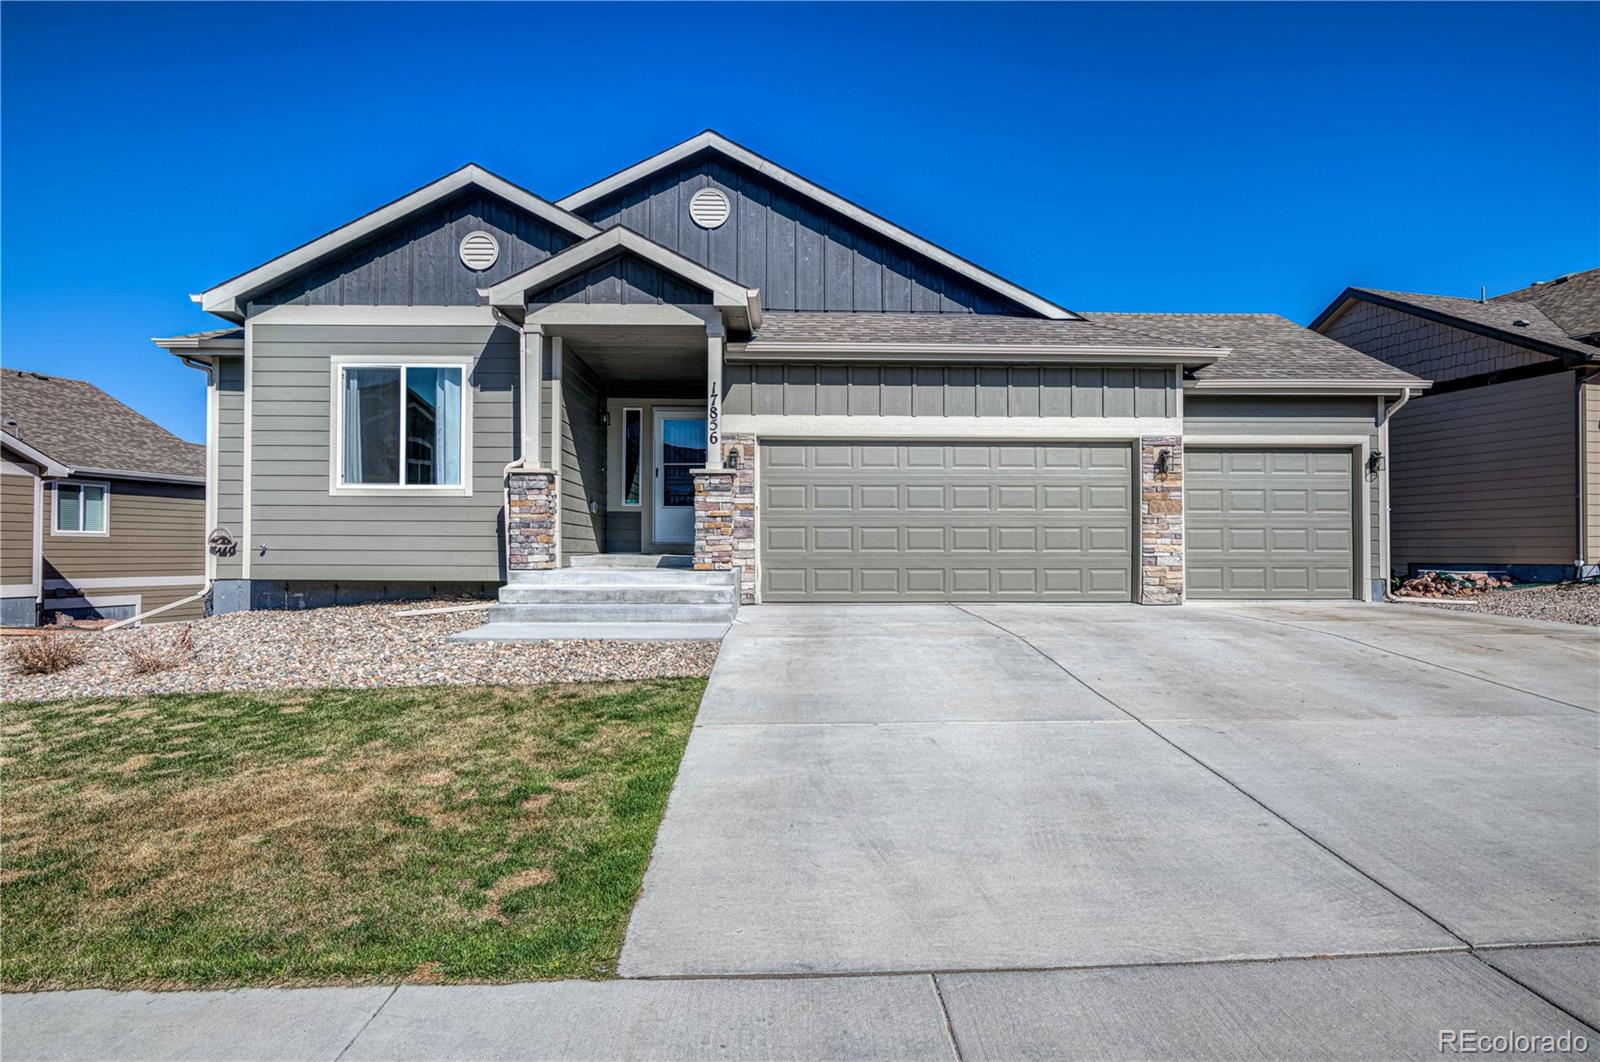 MLS# 5849980 - 1 - 17856 17856 Way, Monument, CO 80132